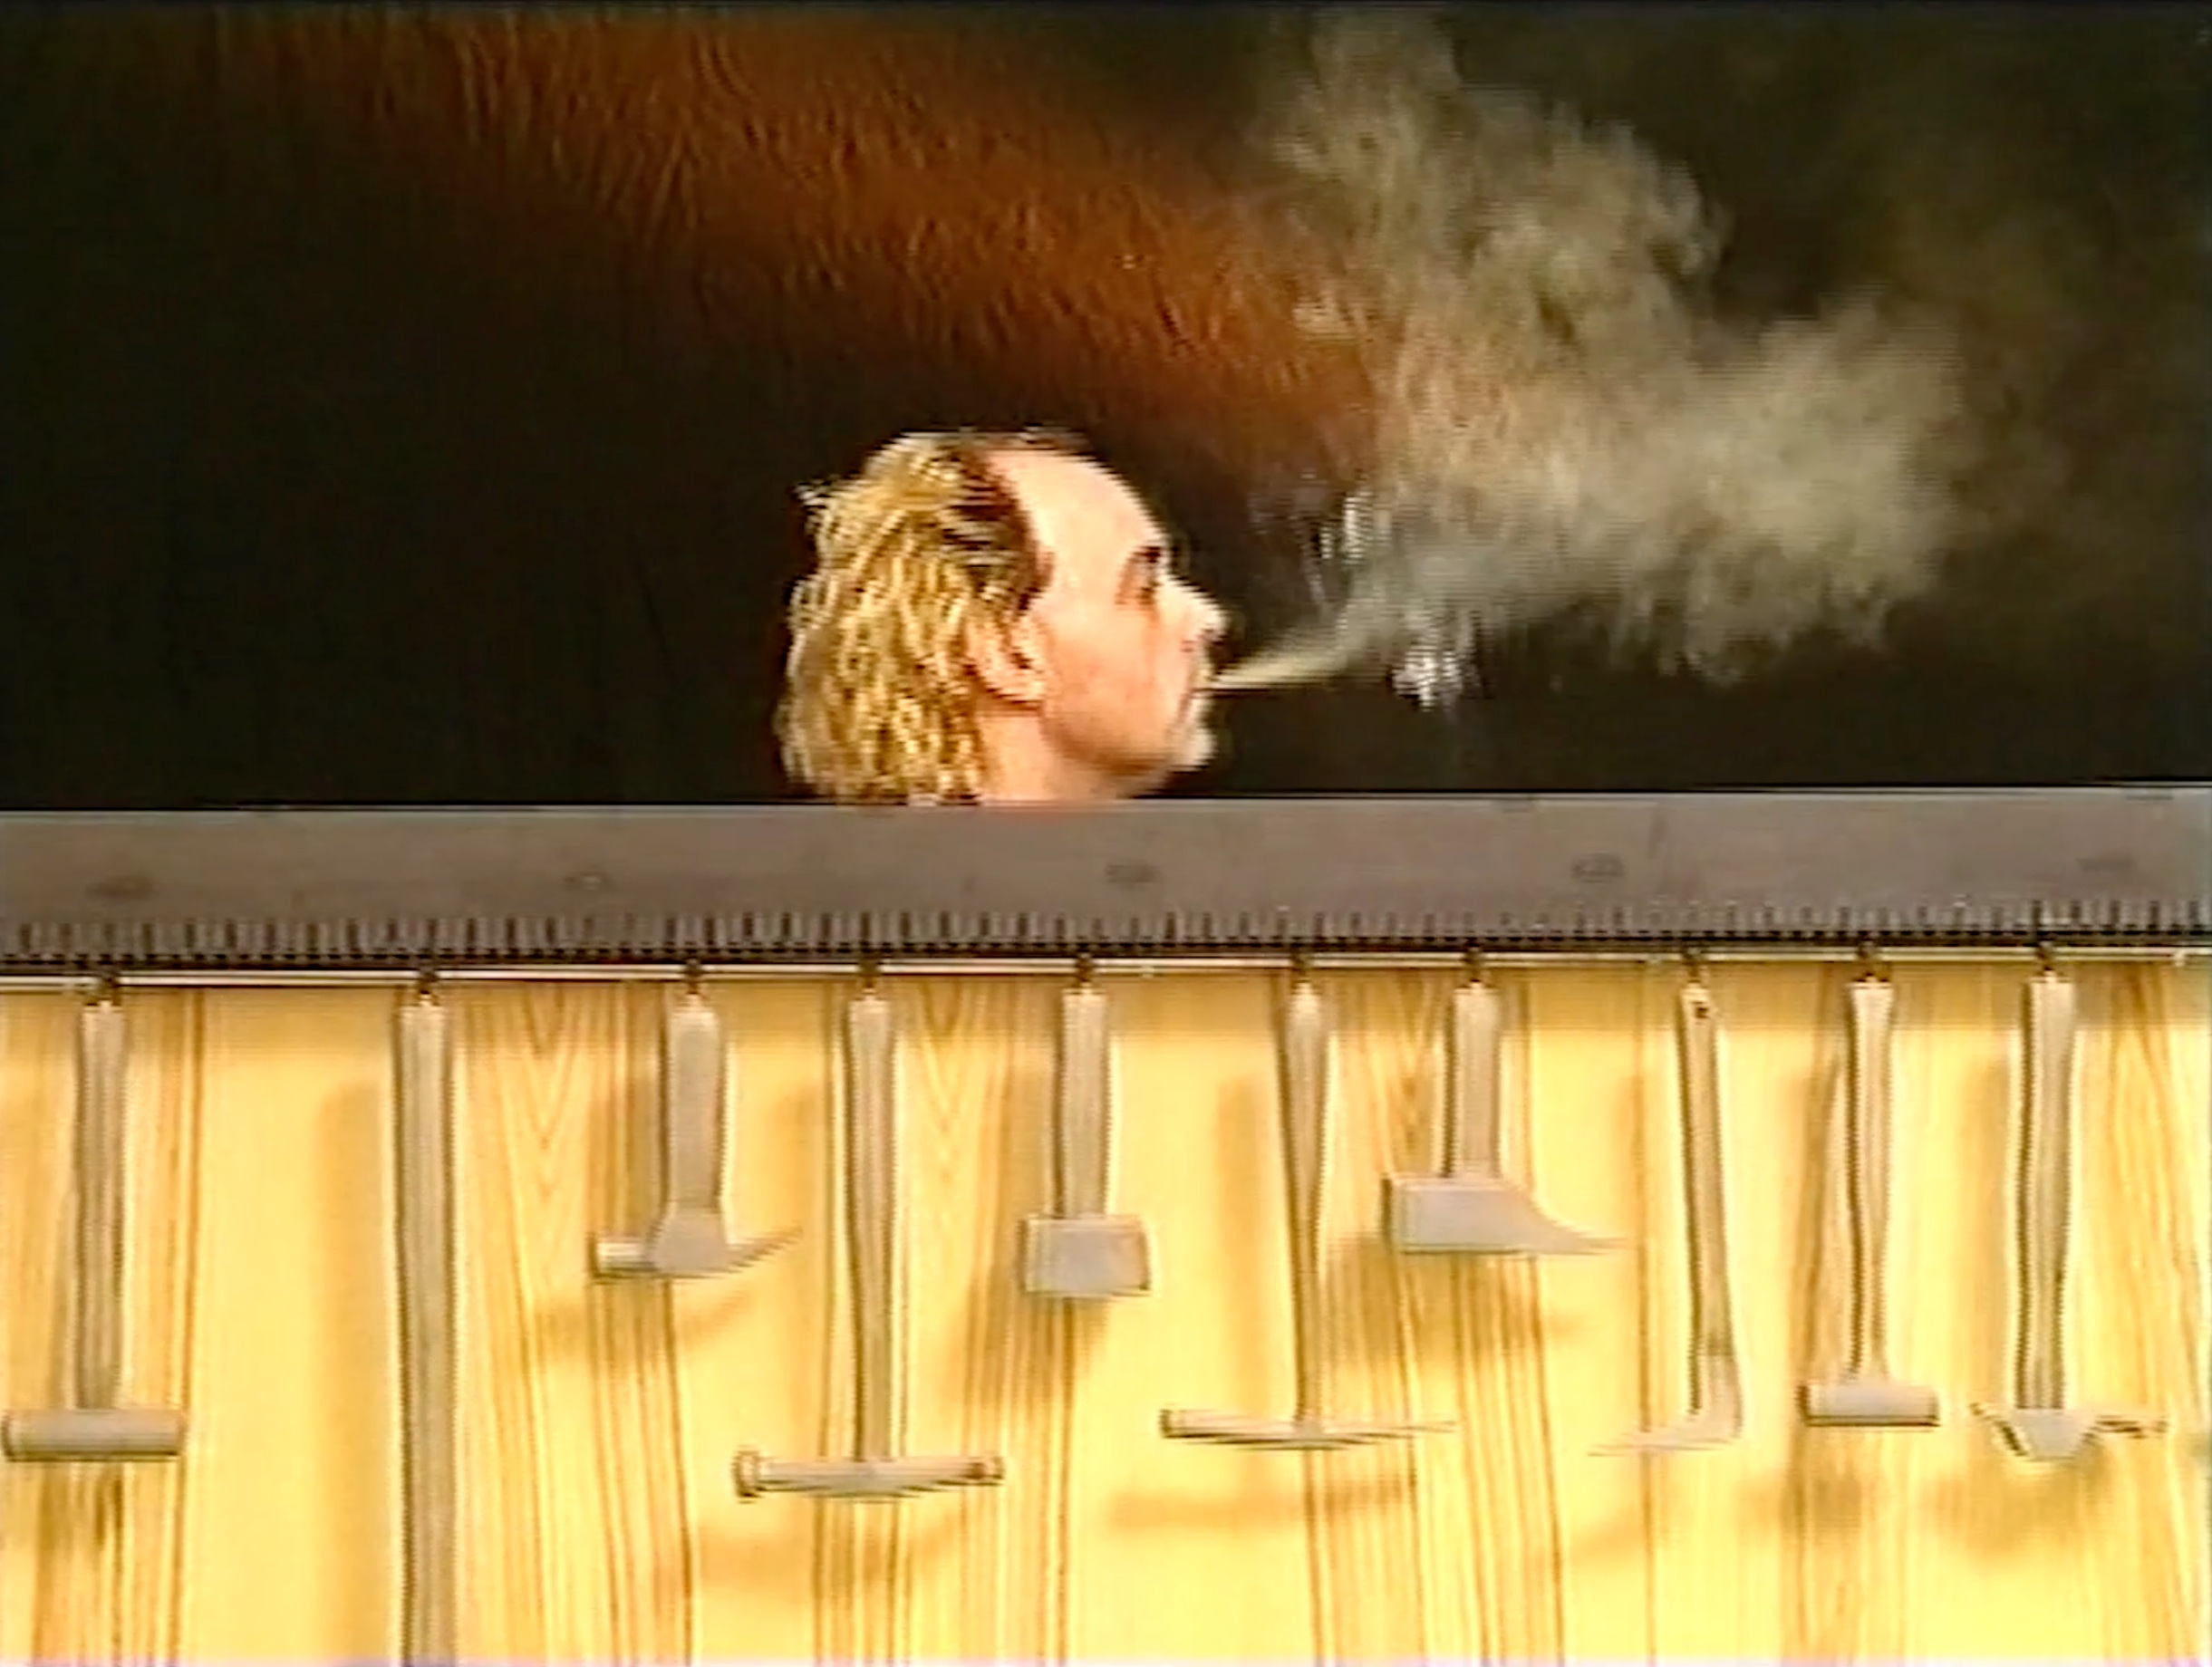 Image from Breath, Action Video, 1992